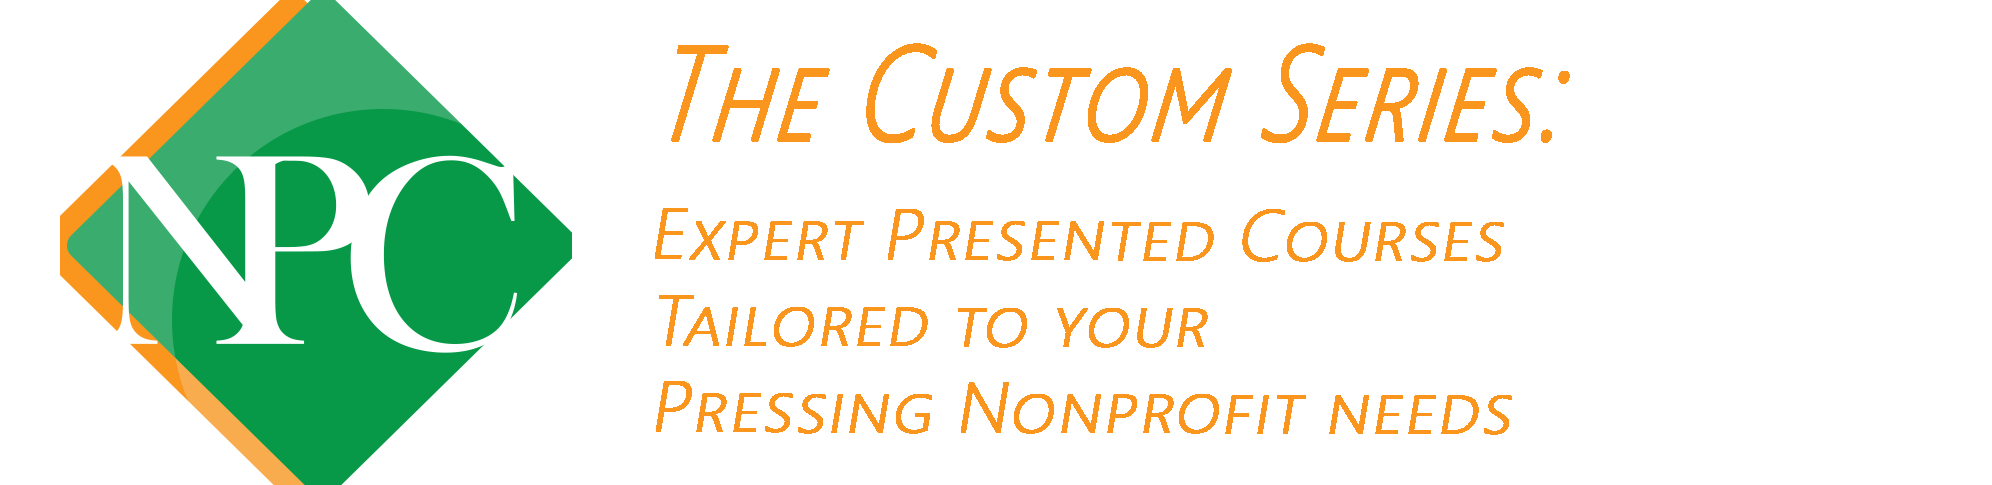 Marilyn Donnellan – Custom Training in Nonprofit Operations